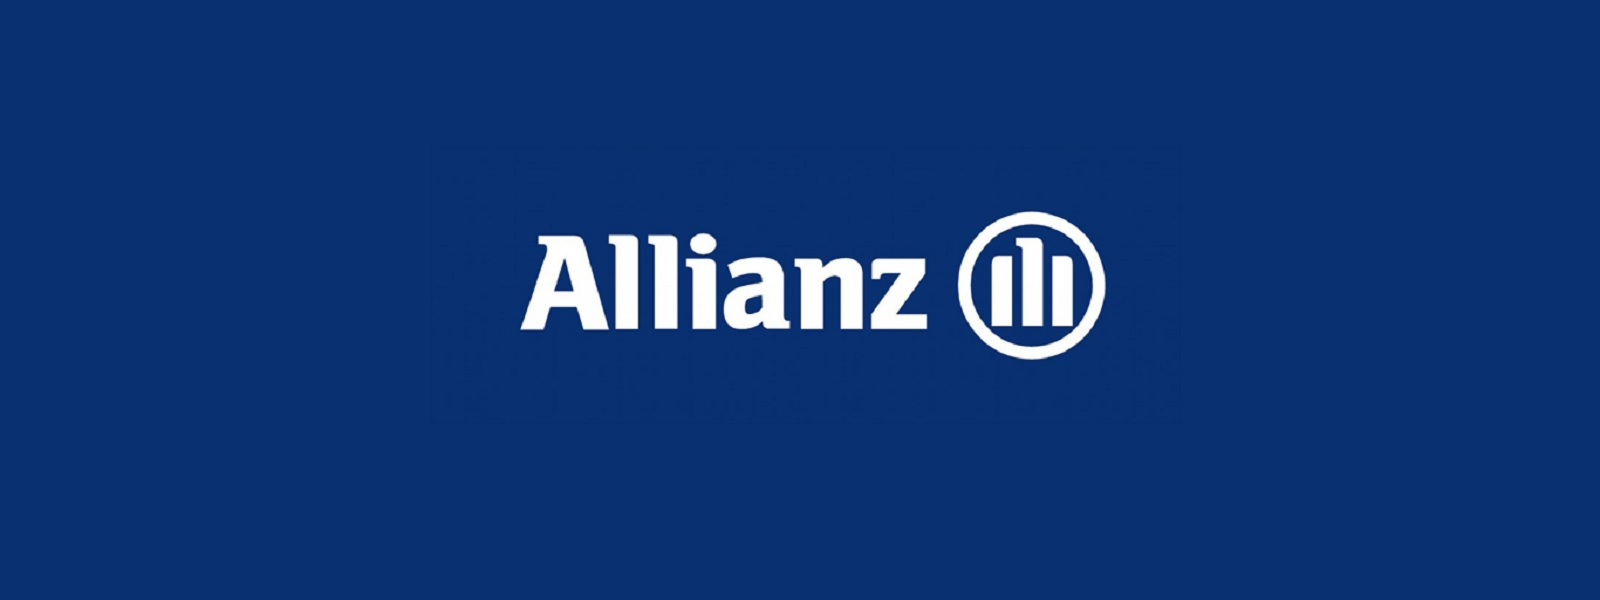 Allianz, your trusted partner for all your insurance needs